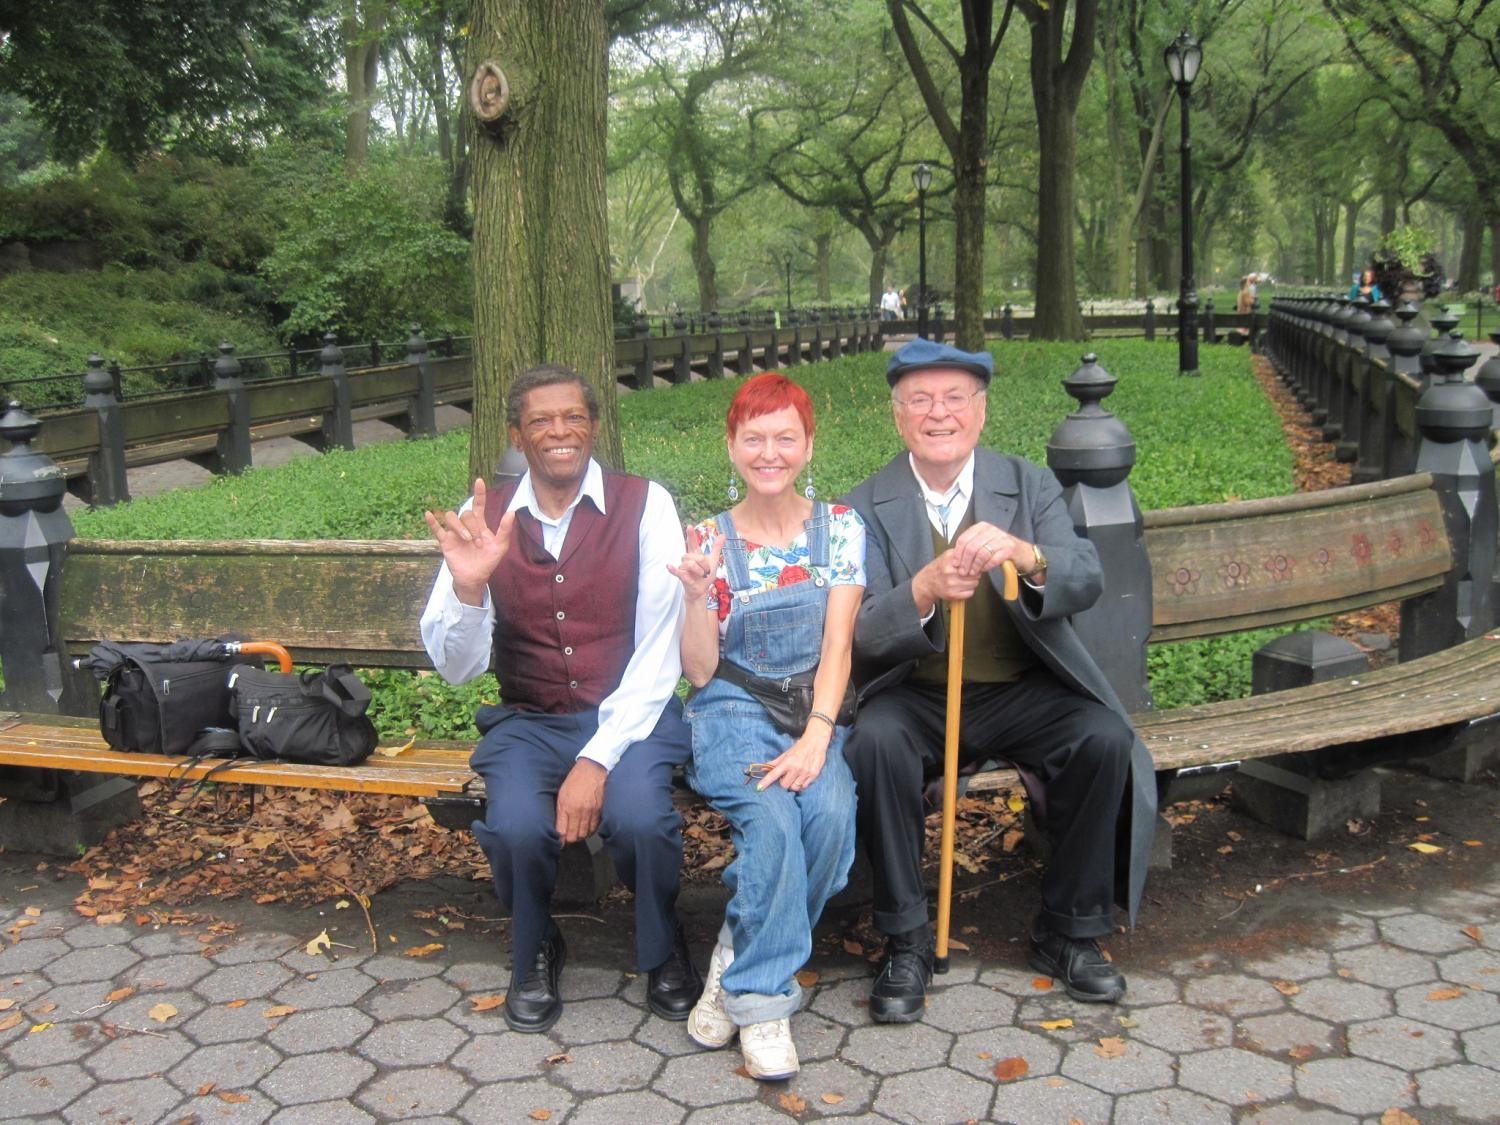 Performance in Central Park: Gerald Small (ASL), Leslie Fanelli, William Dembaugh